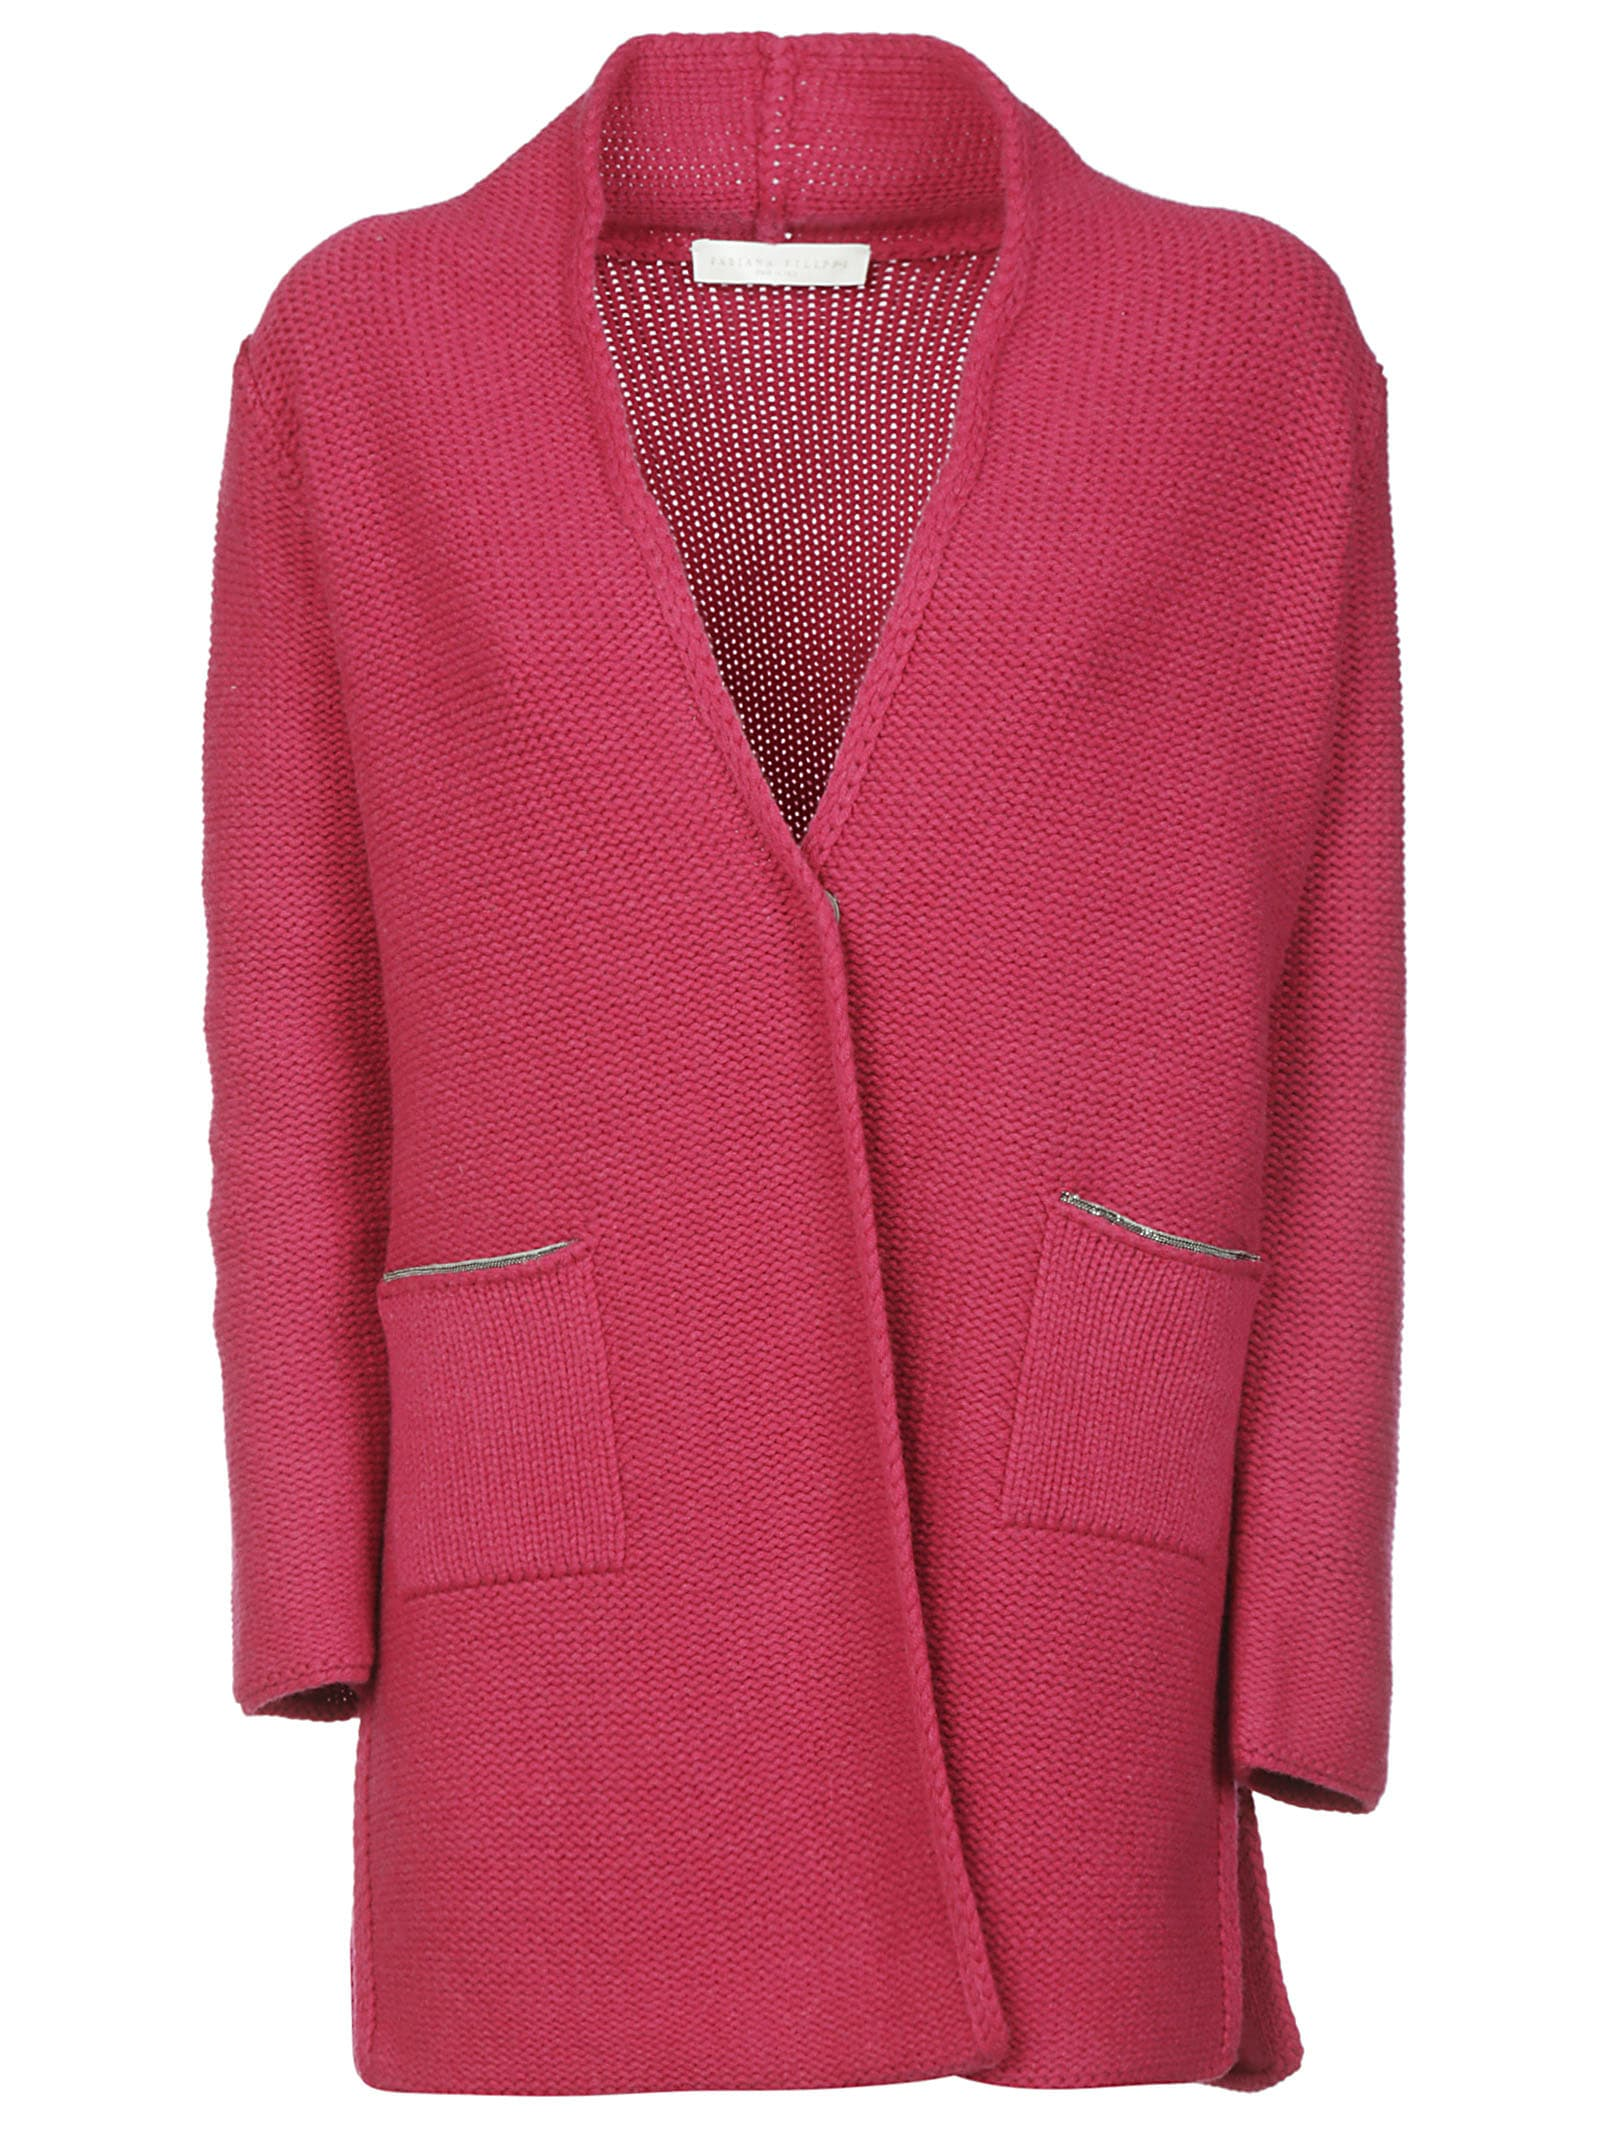 Fabiana Filippi Knitted Cardi Coat